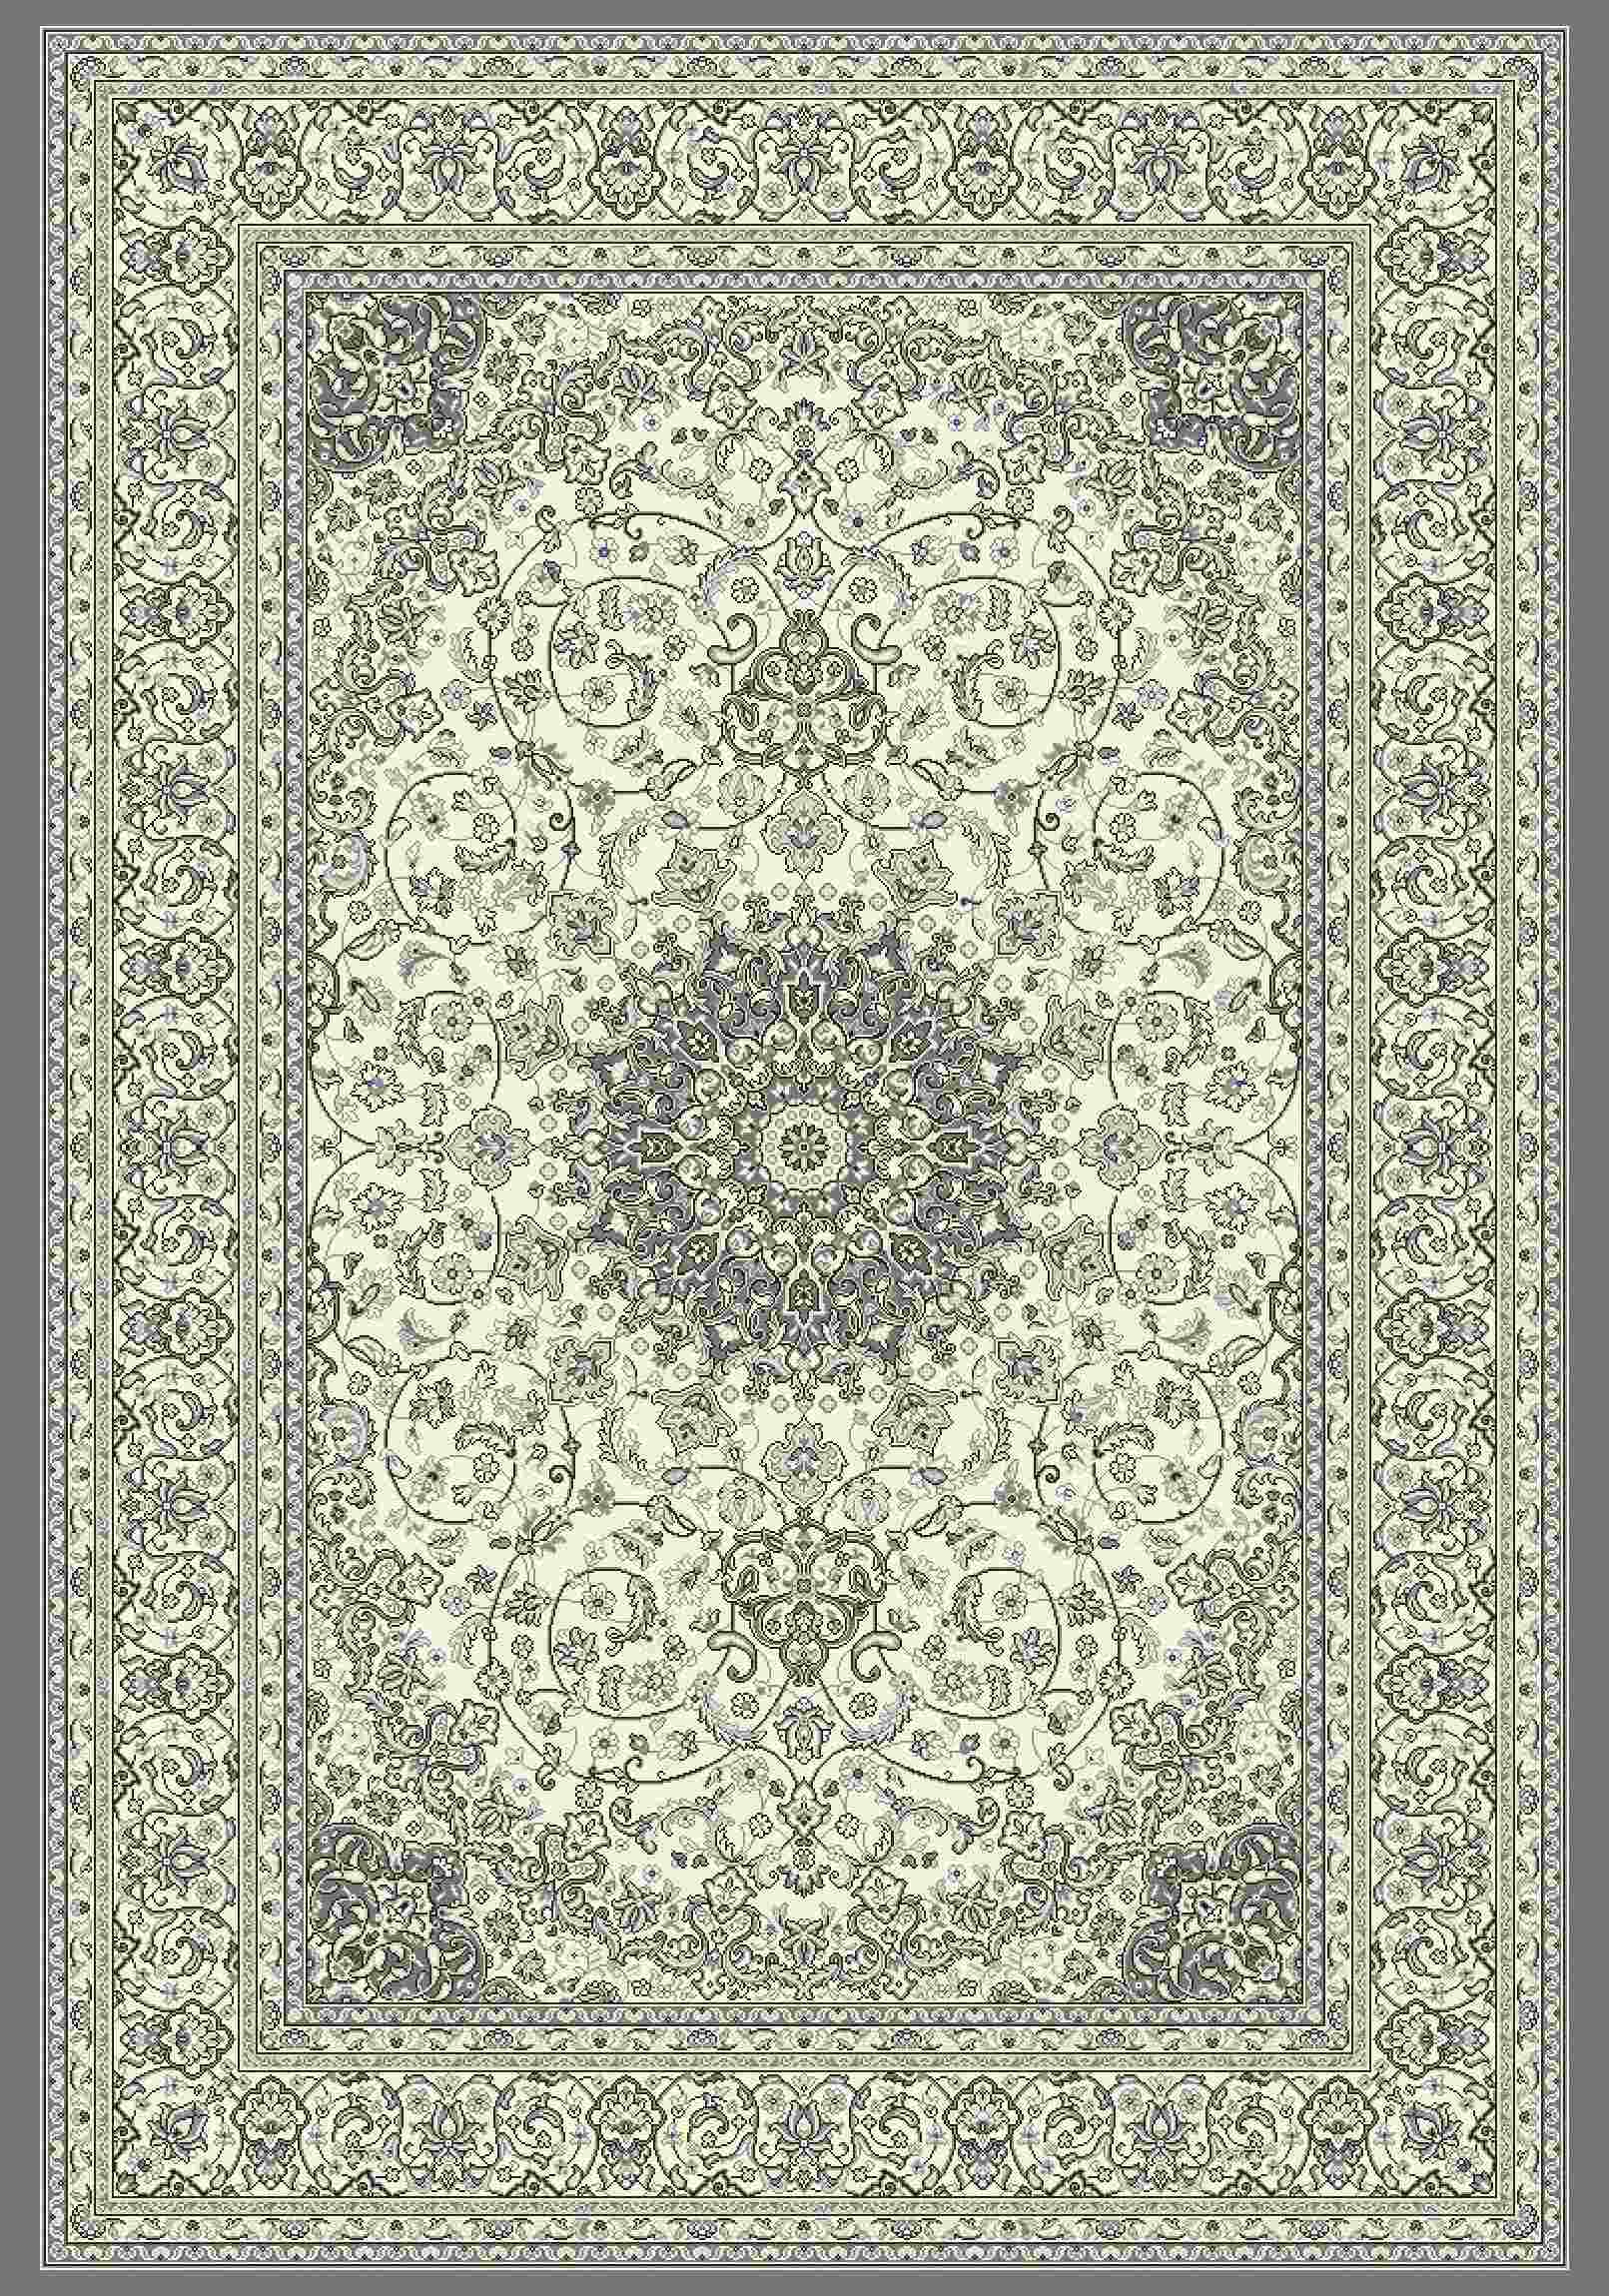 Dynamic Rugs Ancient Garden Classic Cream/grey 57119 Area Rug